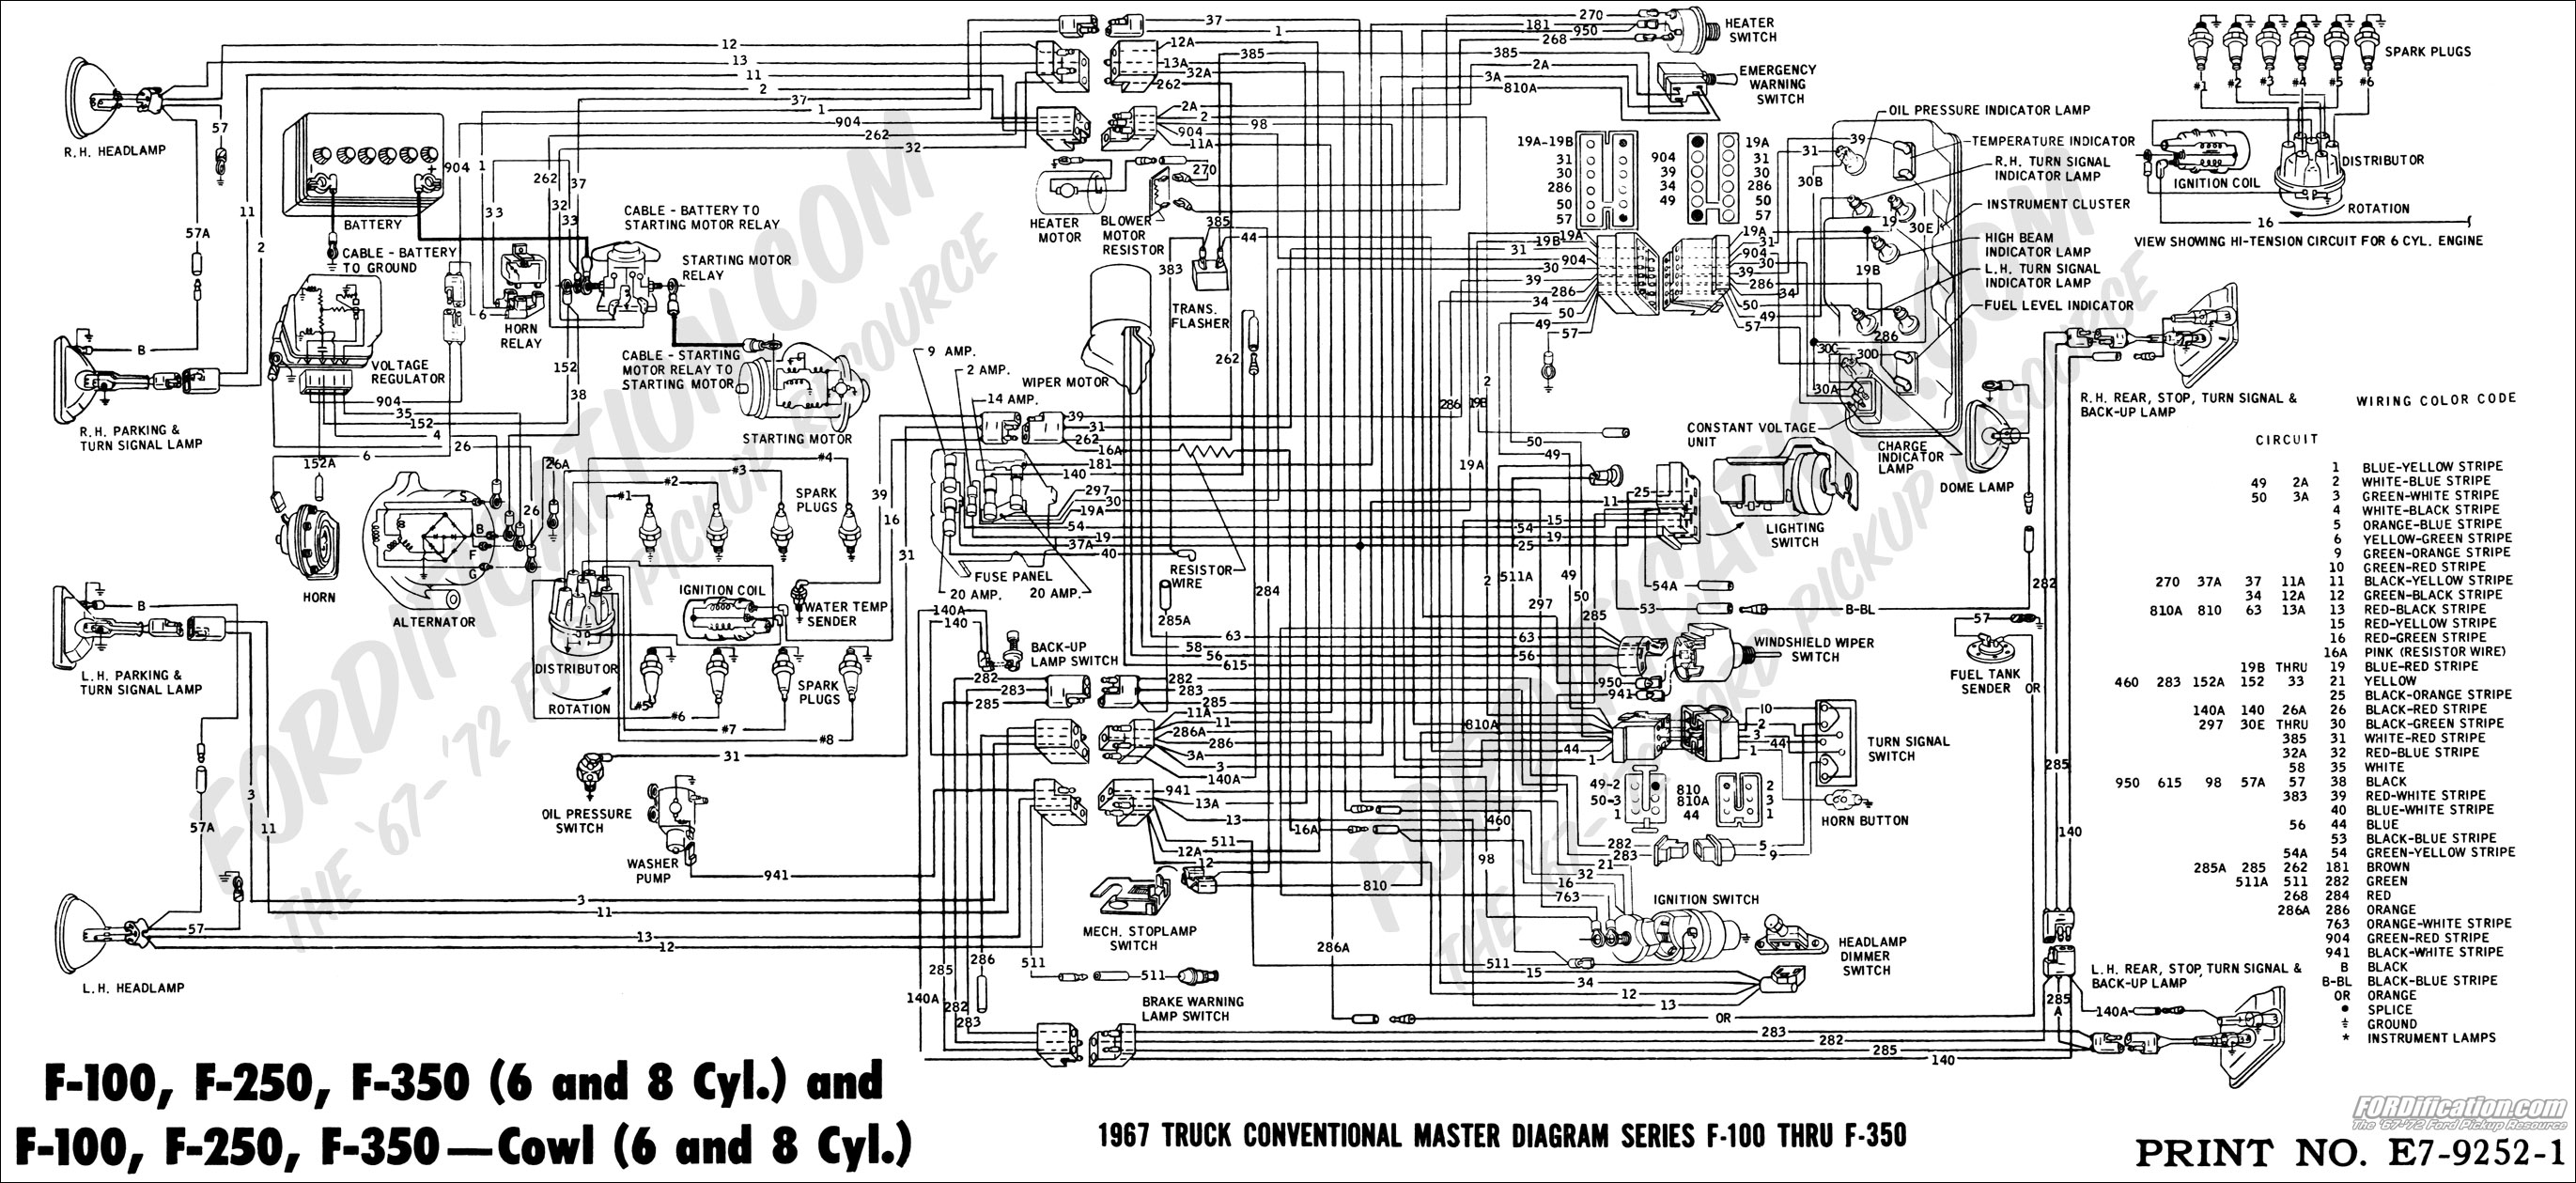 67masterdiagram free wiring diagrams \u2022 life quotes co 2002 ford escape alternator wiring diagram at honlapkeszites.co